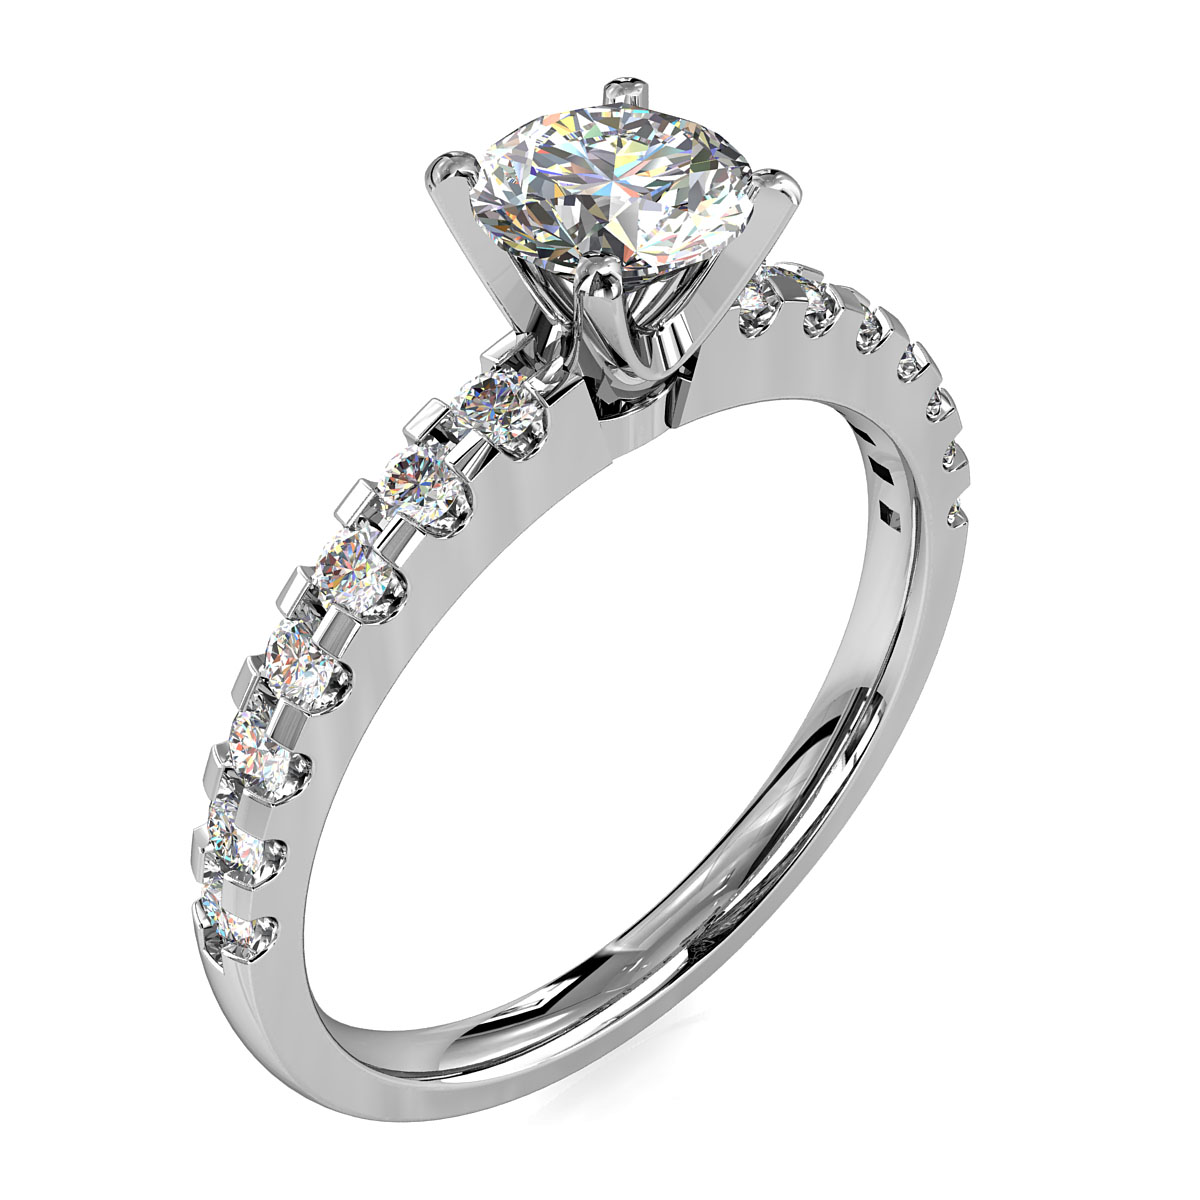 Round Brilliant Cut Solitaire Diamond Engagement Ring, 4 Claws Set on a Thin Double Cut Claw Band with Classic Undersetting.